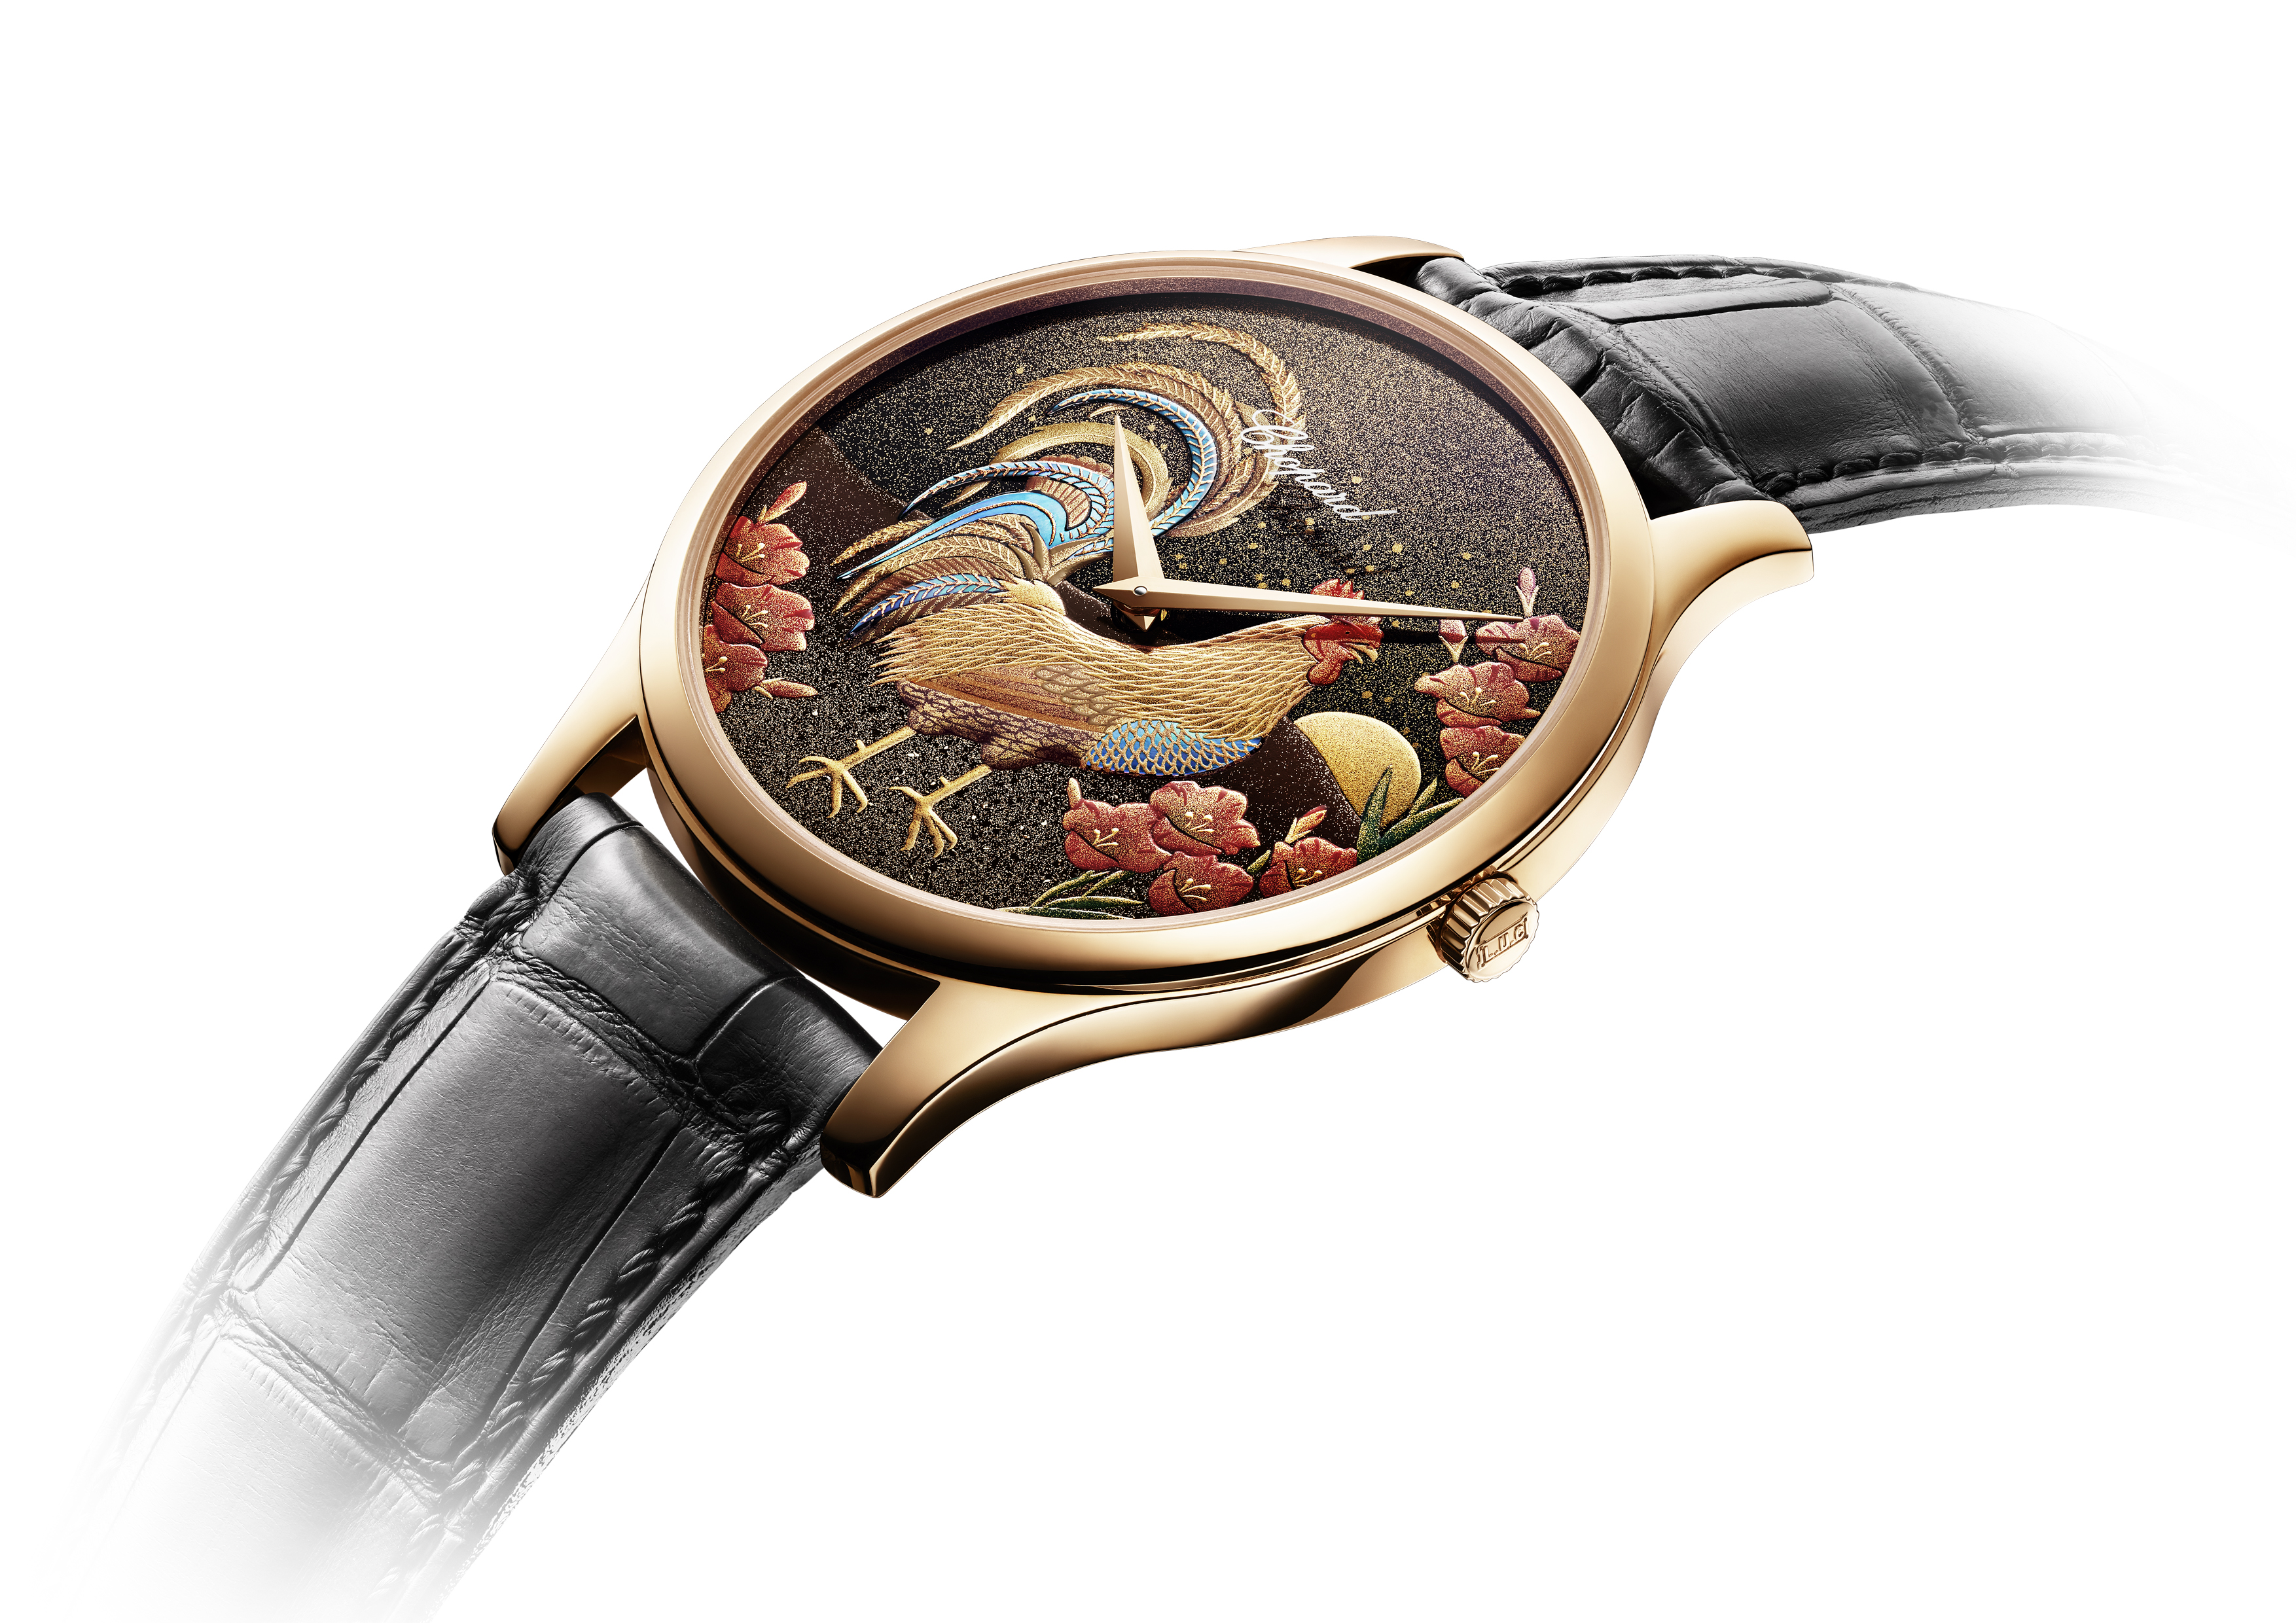 8 Lucky Year of the Rooster Timepieces